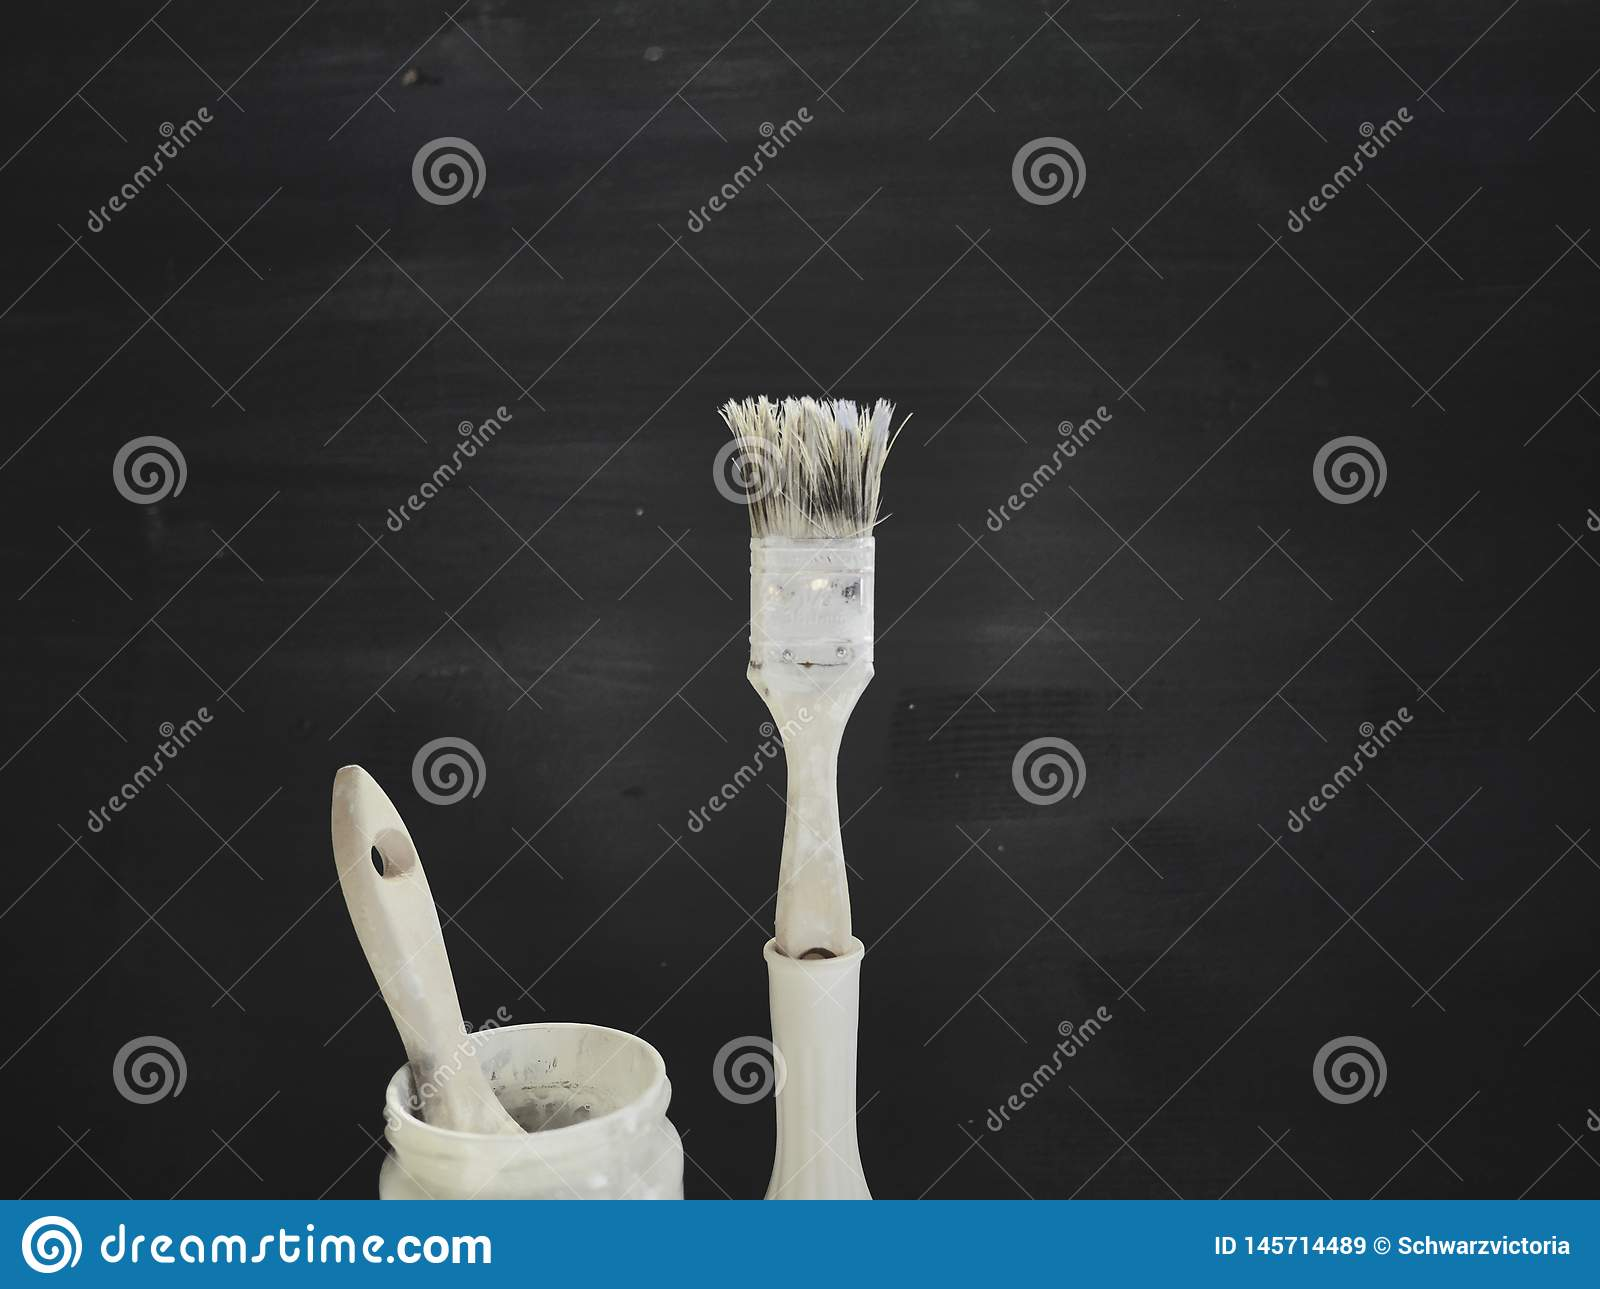 White Brush in front if dark painted background